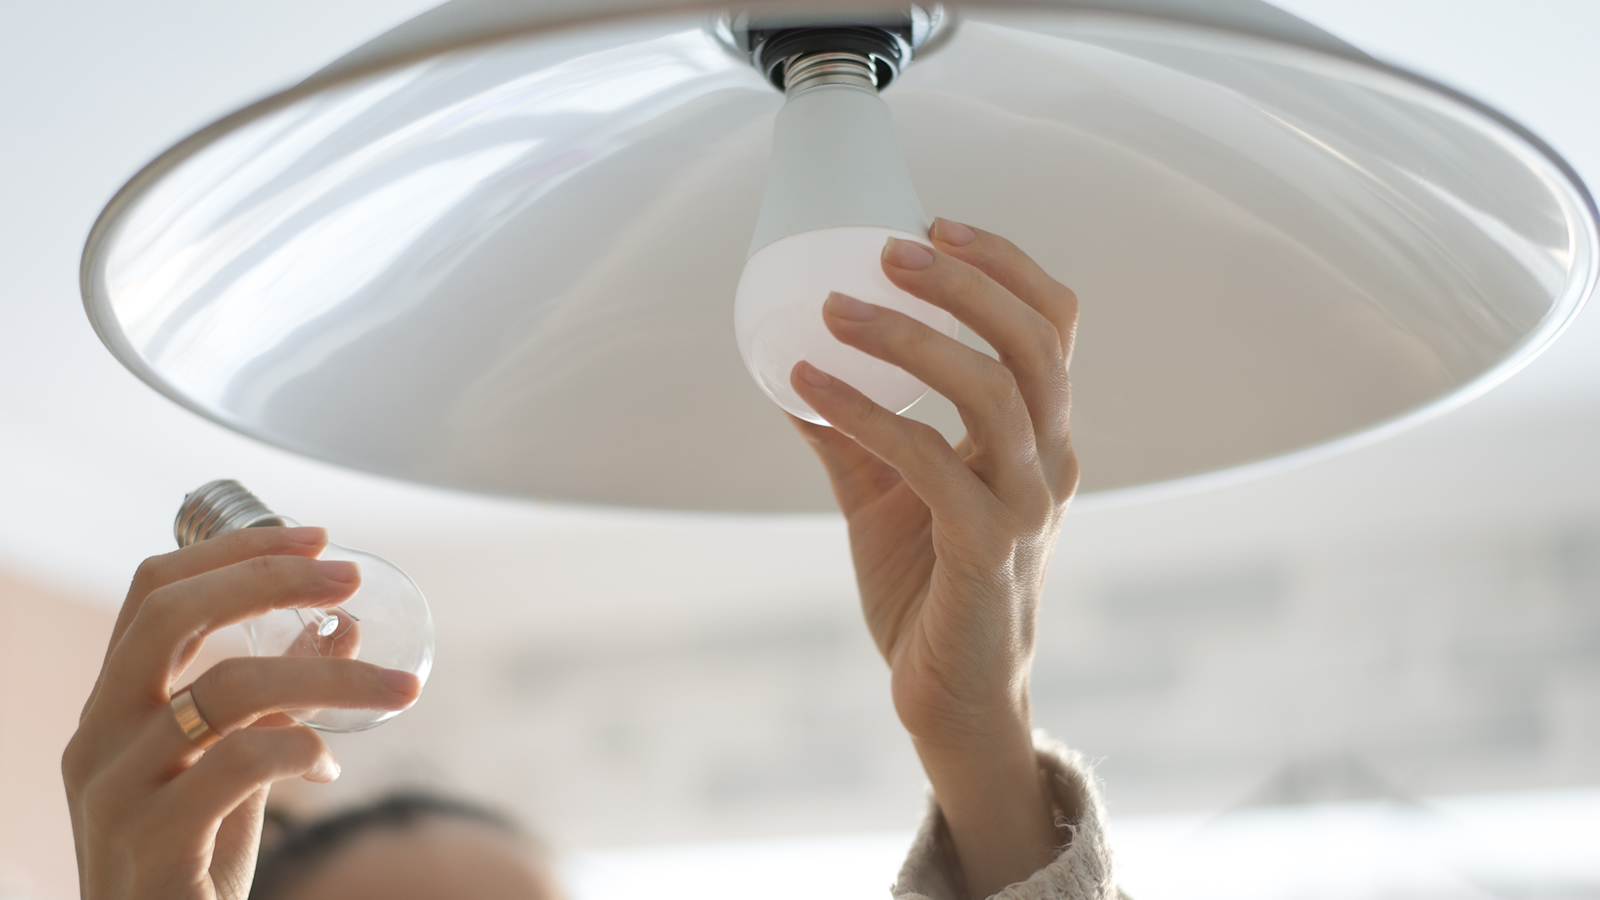 <h4>The Cleanest Energy-Conservation and Efficiency</h4> <h5>Convince 10 states to adopt energy efficiency standards for appliances.</h5> <em>Rasstock via Shutterstock.com</em>